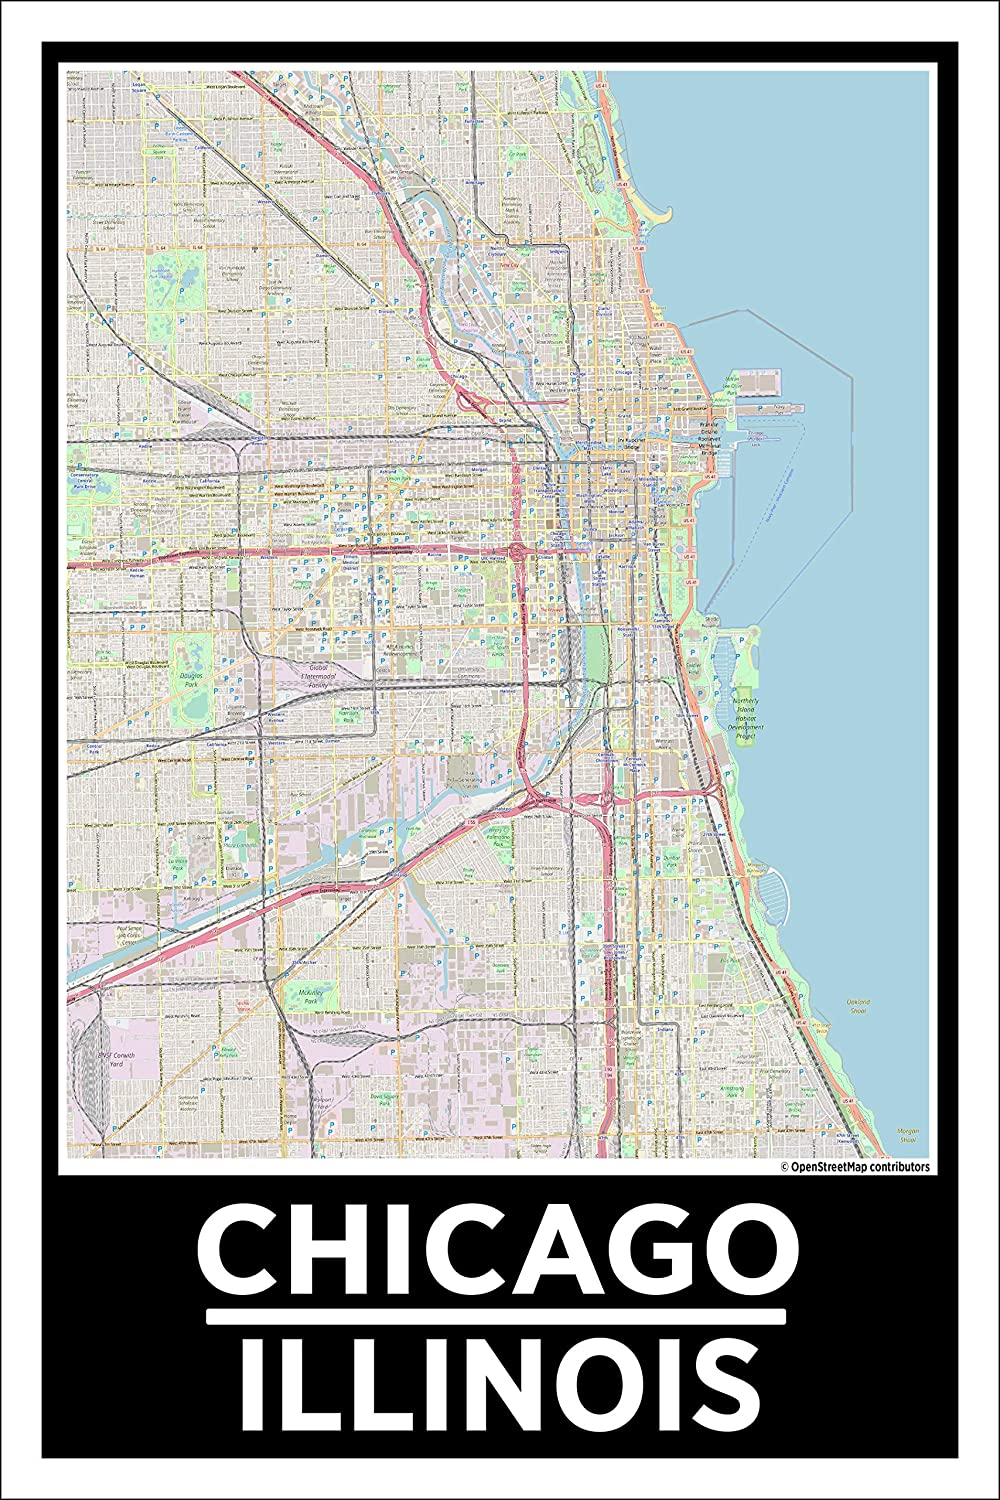 Amazon.com: Spitzy\'s Chicago Illinois 12 by 18 Poster, City Map ...